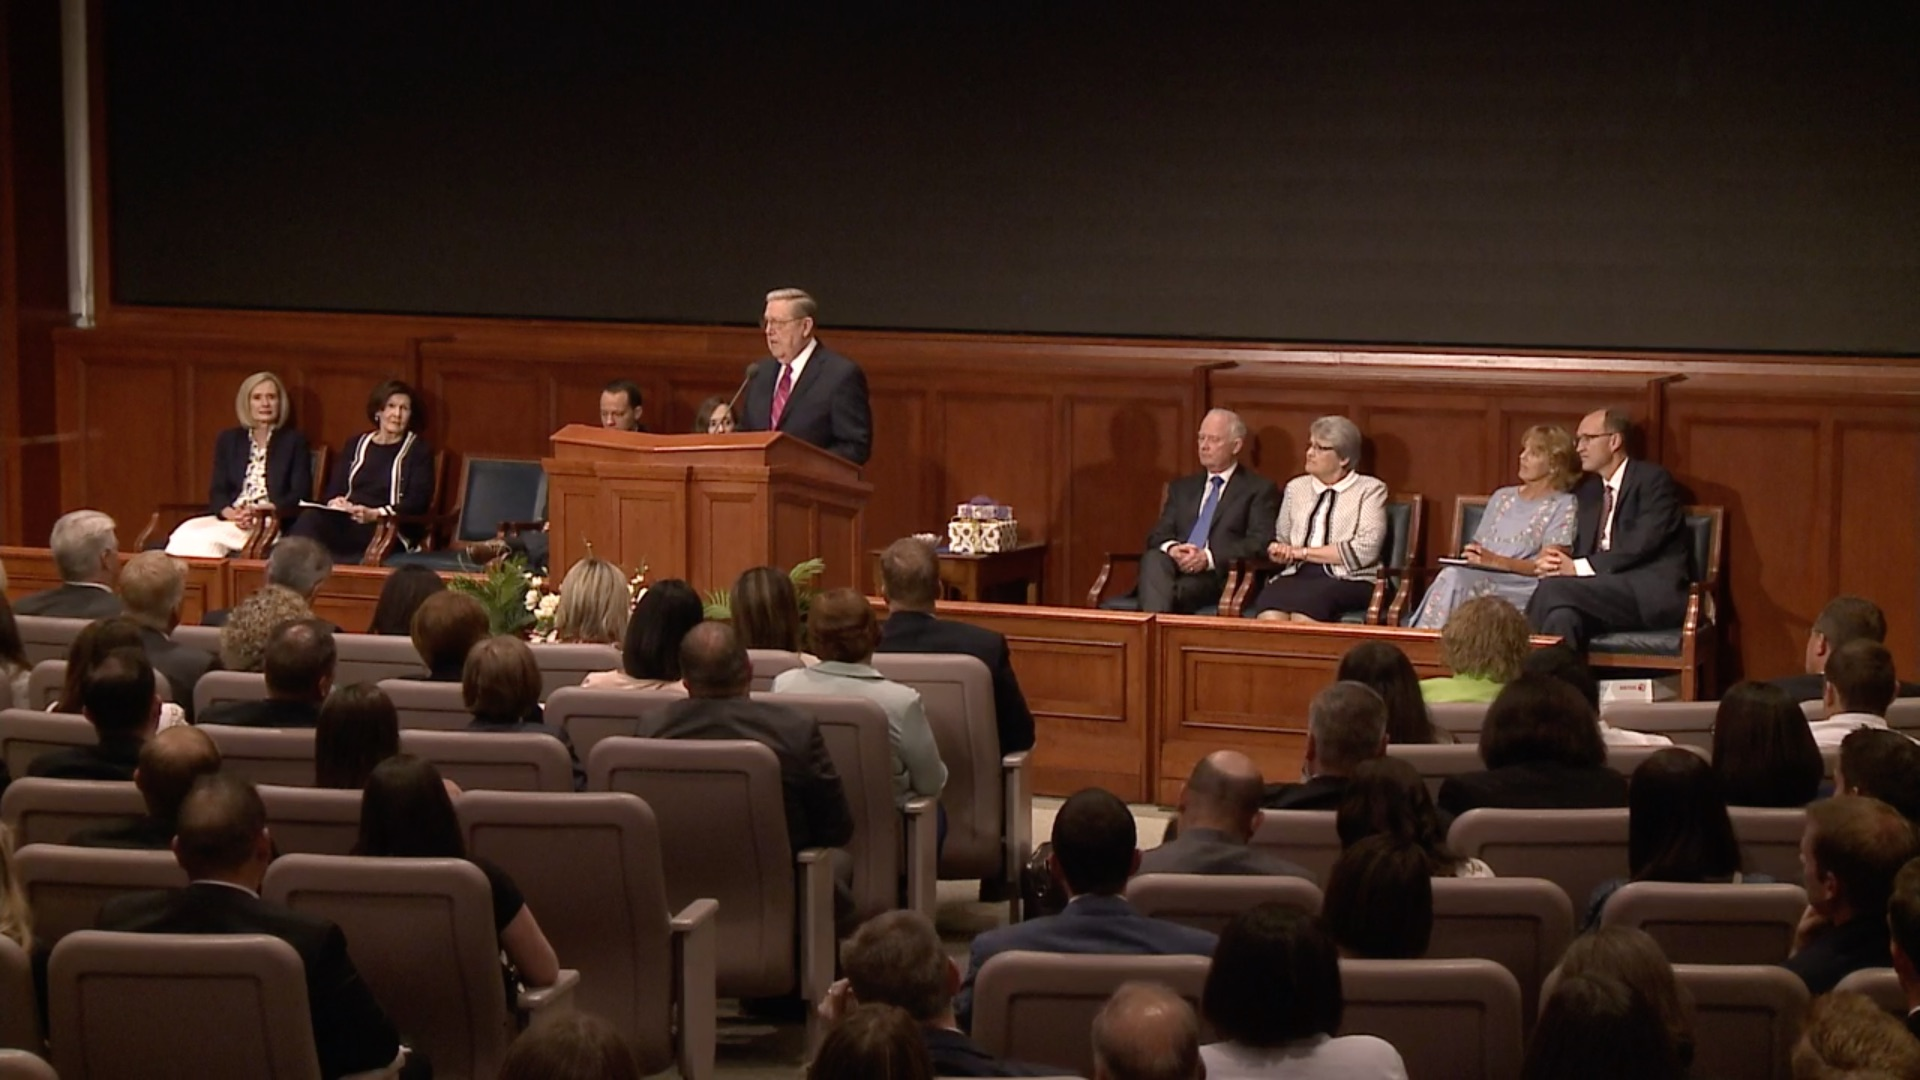 Elder Jeffrey R. Holland of the Quorum of the Twelve Apostles speaks during the Seminaries and Institutes Annual Training Broadcast on June 12, 2019.